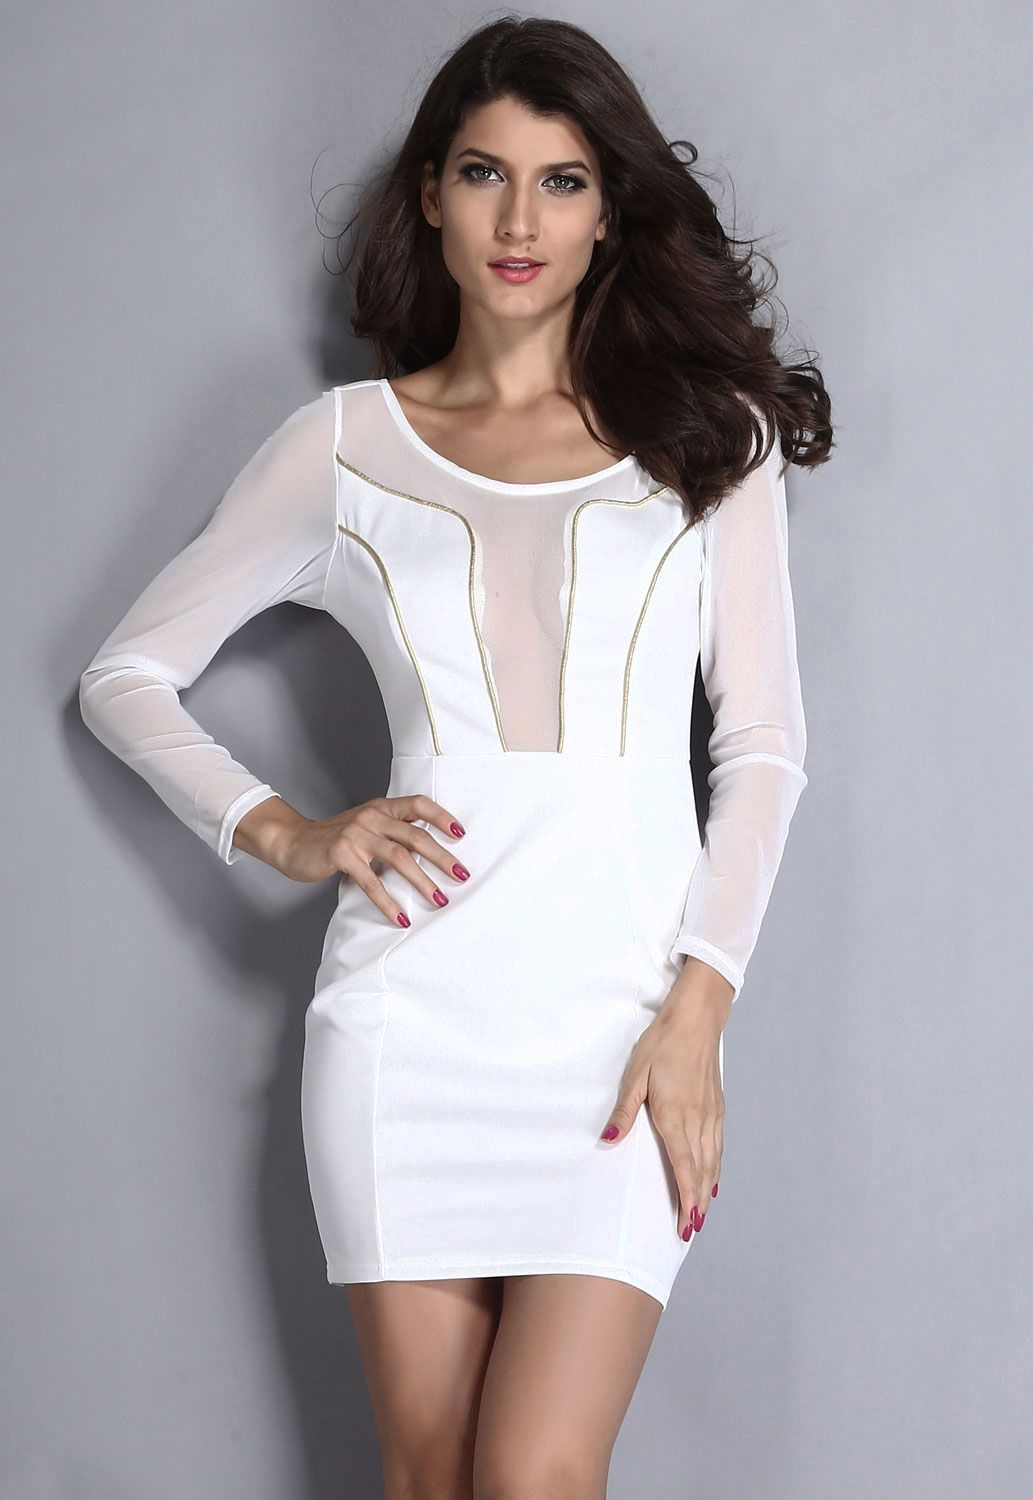 best images about peekaboo mesh cut out dresses on pinterest